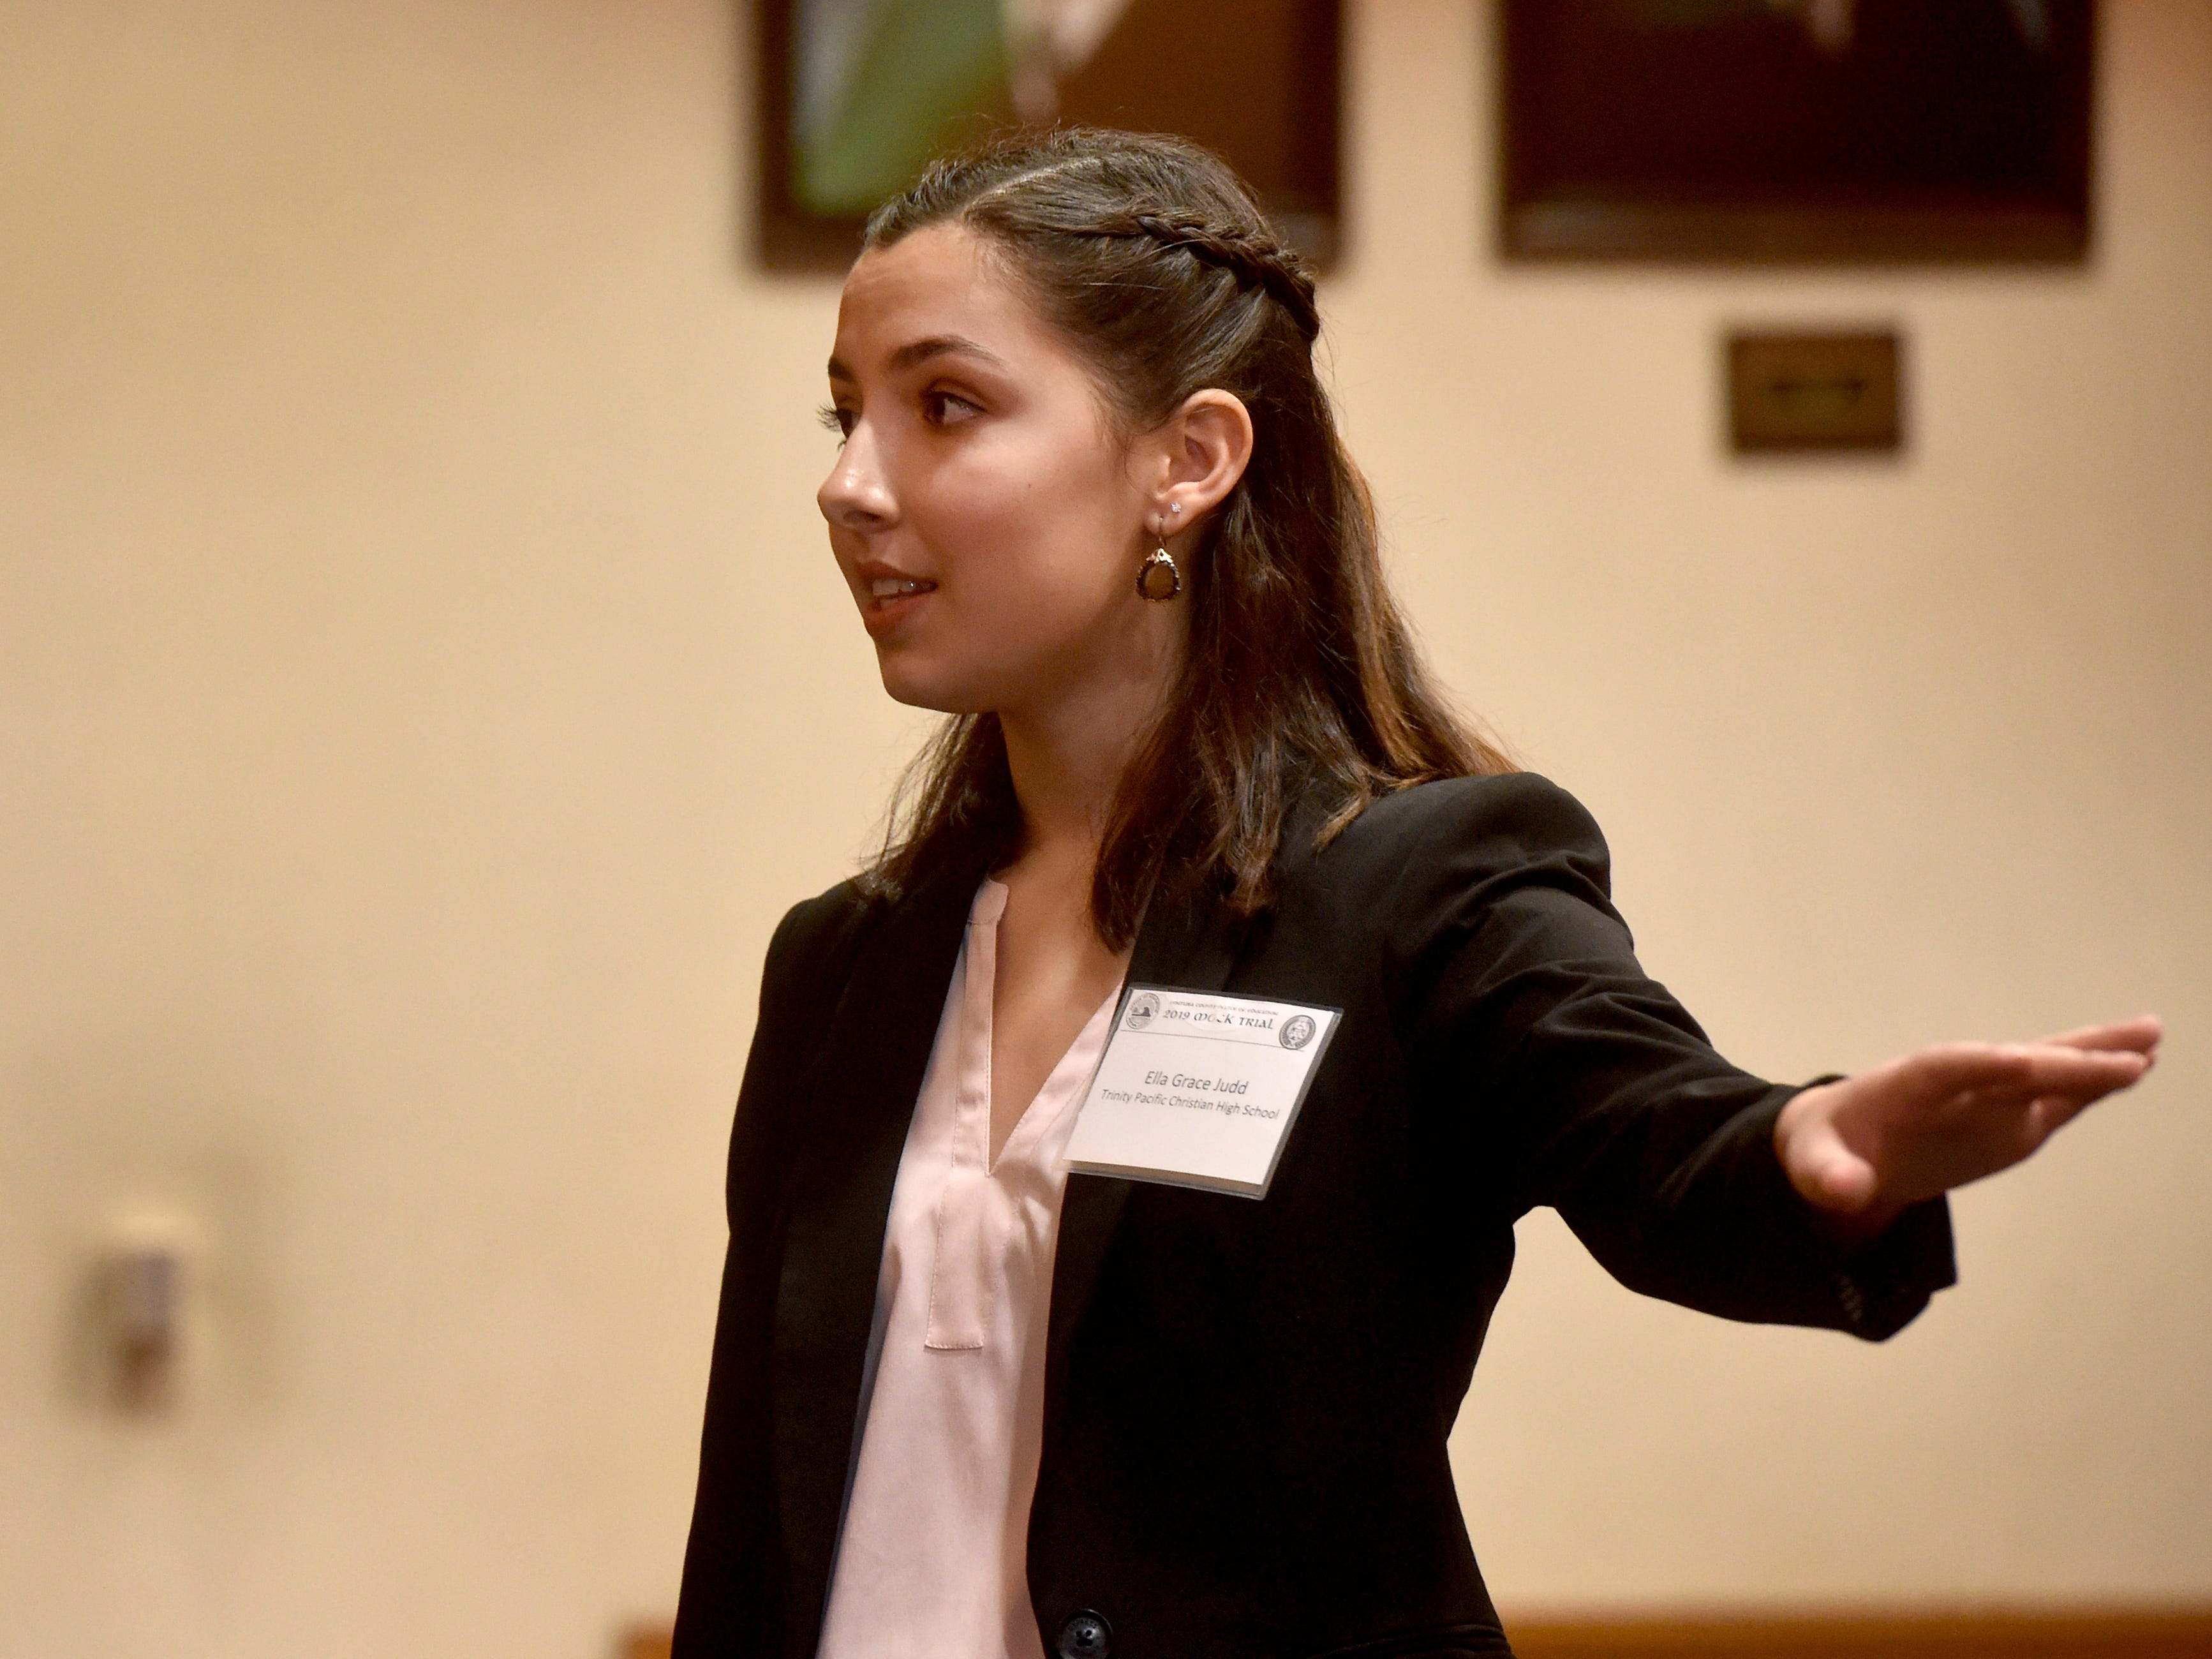 Ella Grace Judd, of Trinity Pacific Christian School in Thousand Oaks, cross examines a witness during one of the final rounds in the Ventura County Mock Trial competition on Thursday.